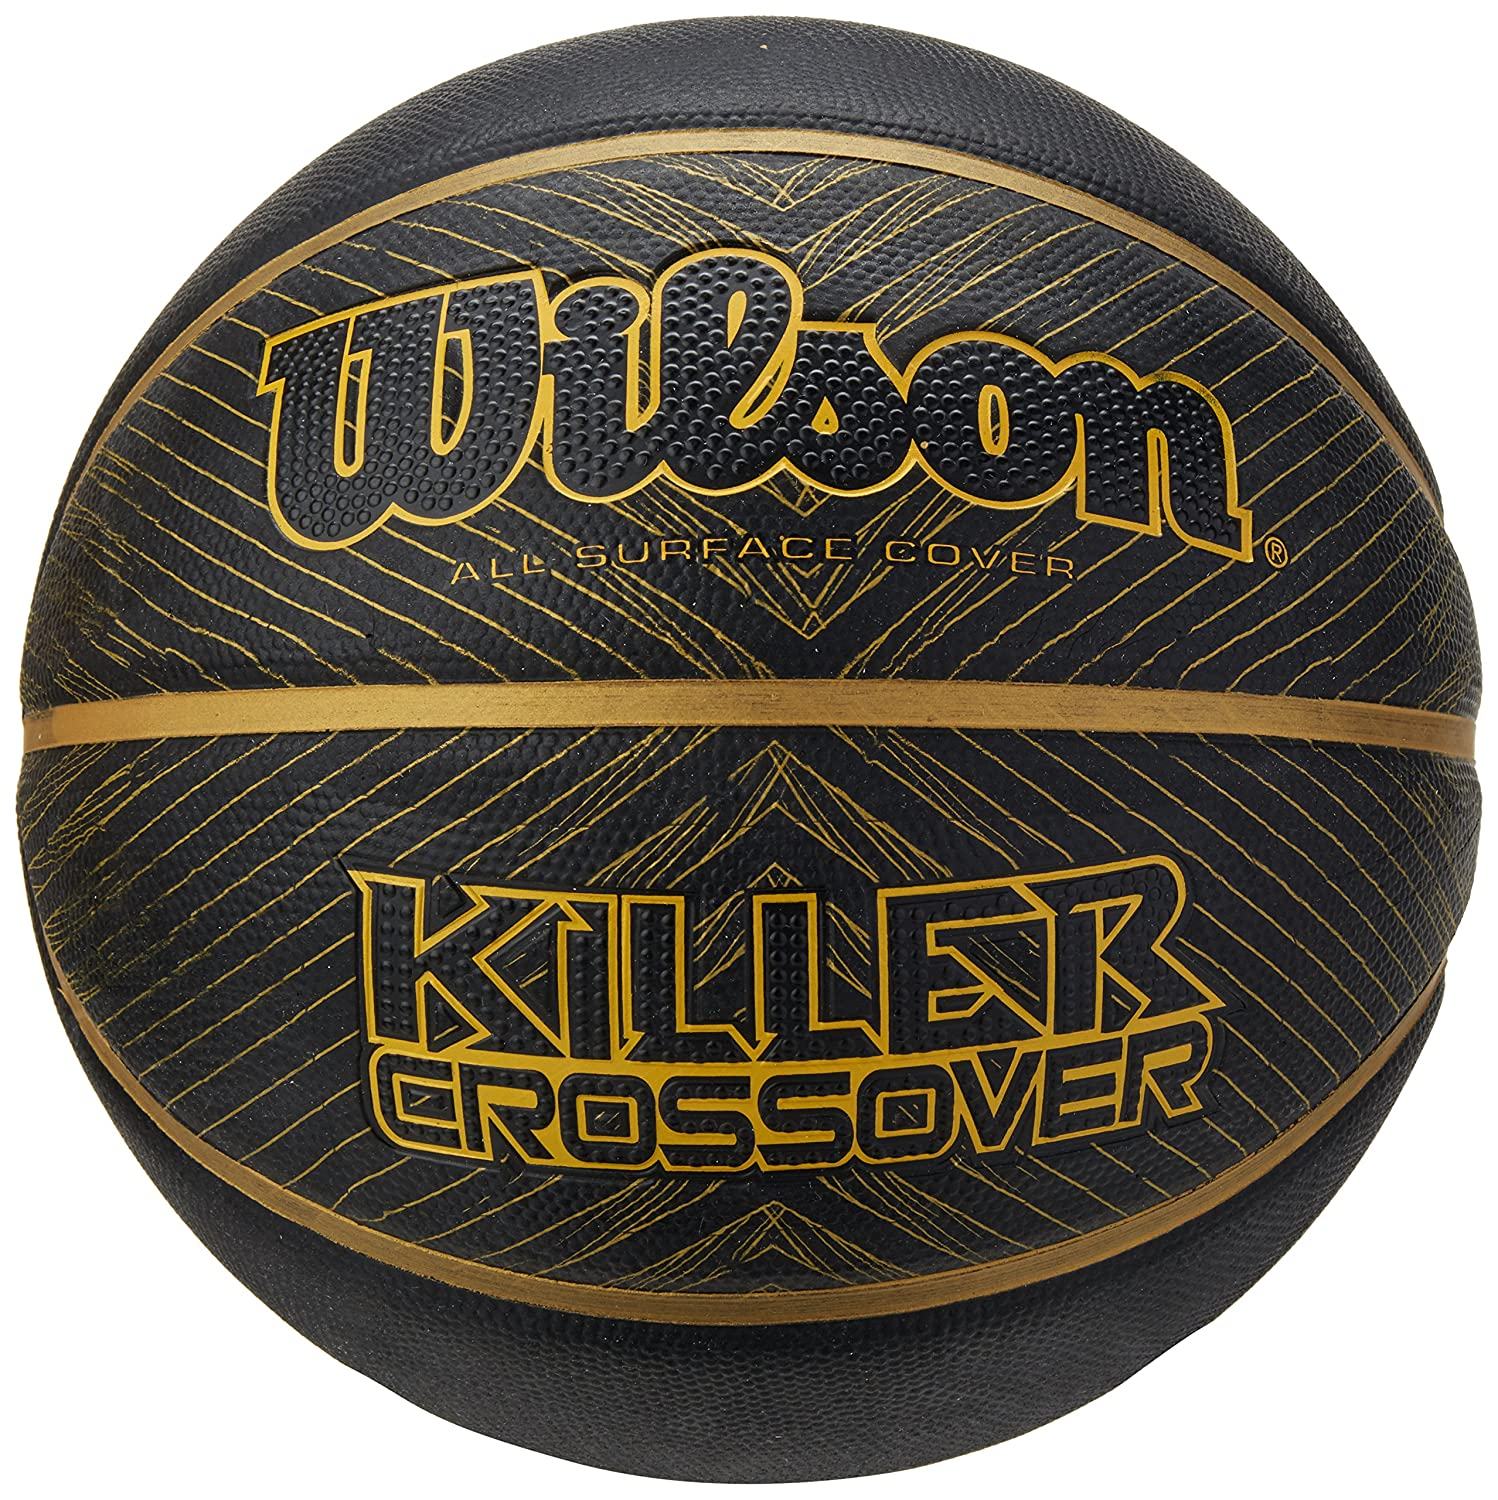 Wilson Killer Crossover Sponge Basketball Noir/Or Official WIMQG|#Wilson Team Sport WTB0977XB21